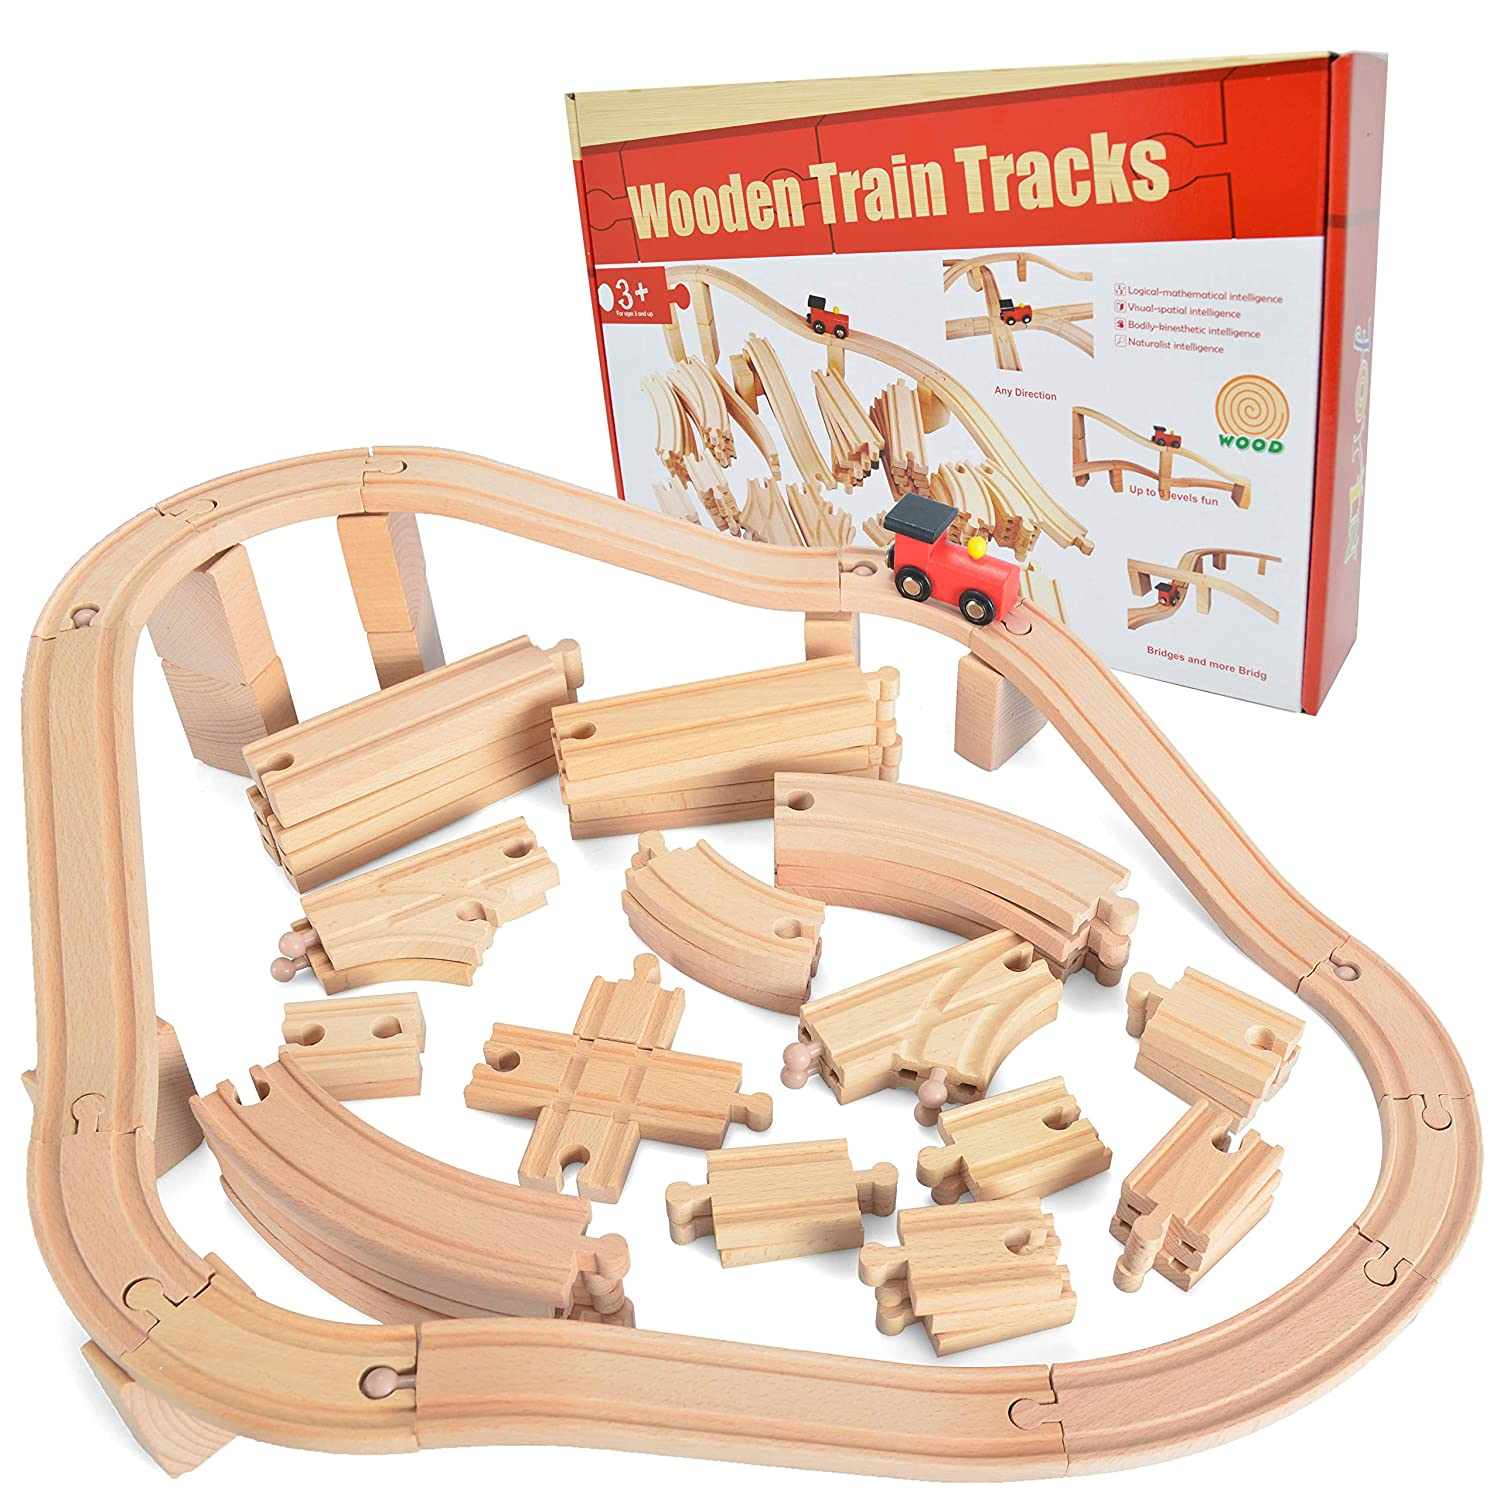 62 Pieces Wooden Train Track Expansion Set 1 Bonus Toy Train New Version Compatible With All Major Brands Including Thomas Battery Operated